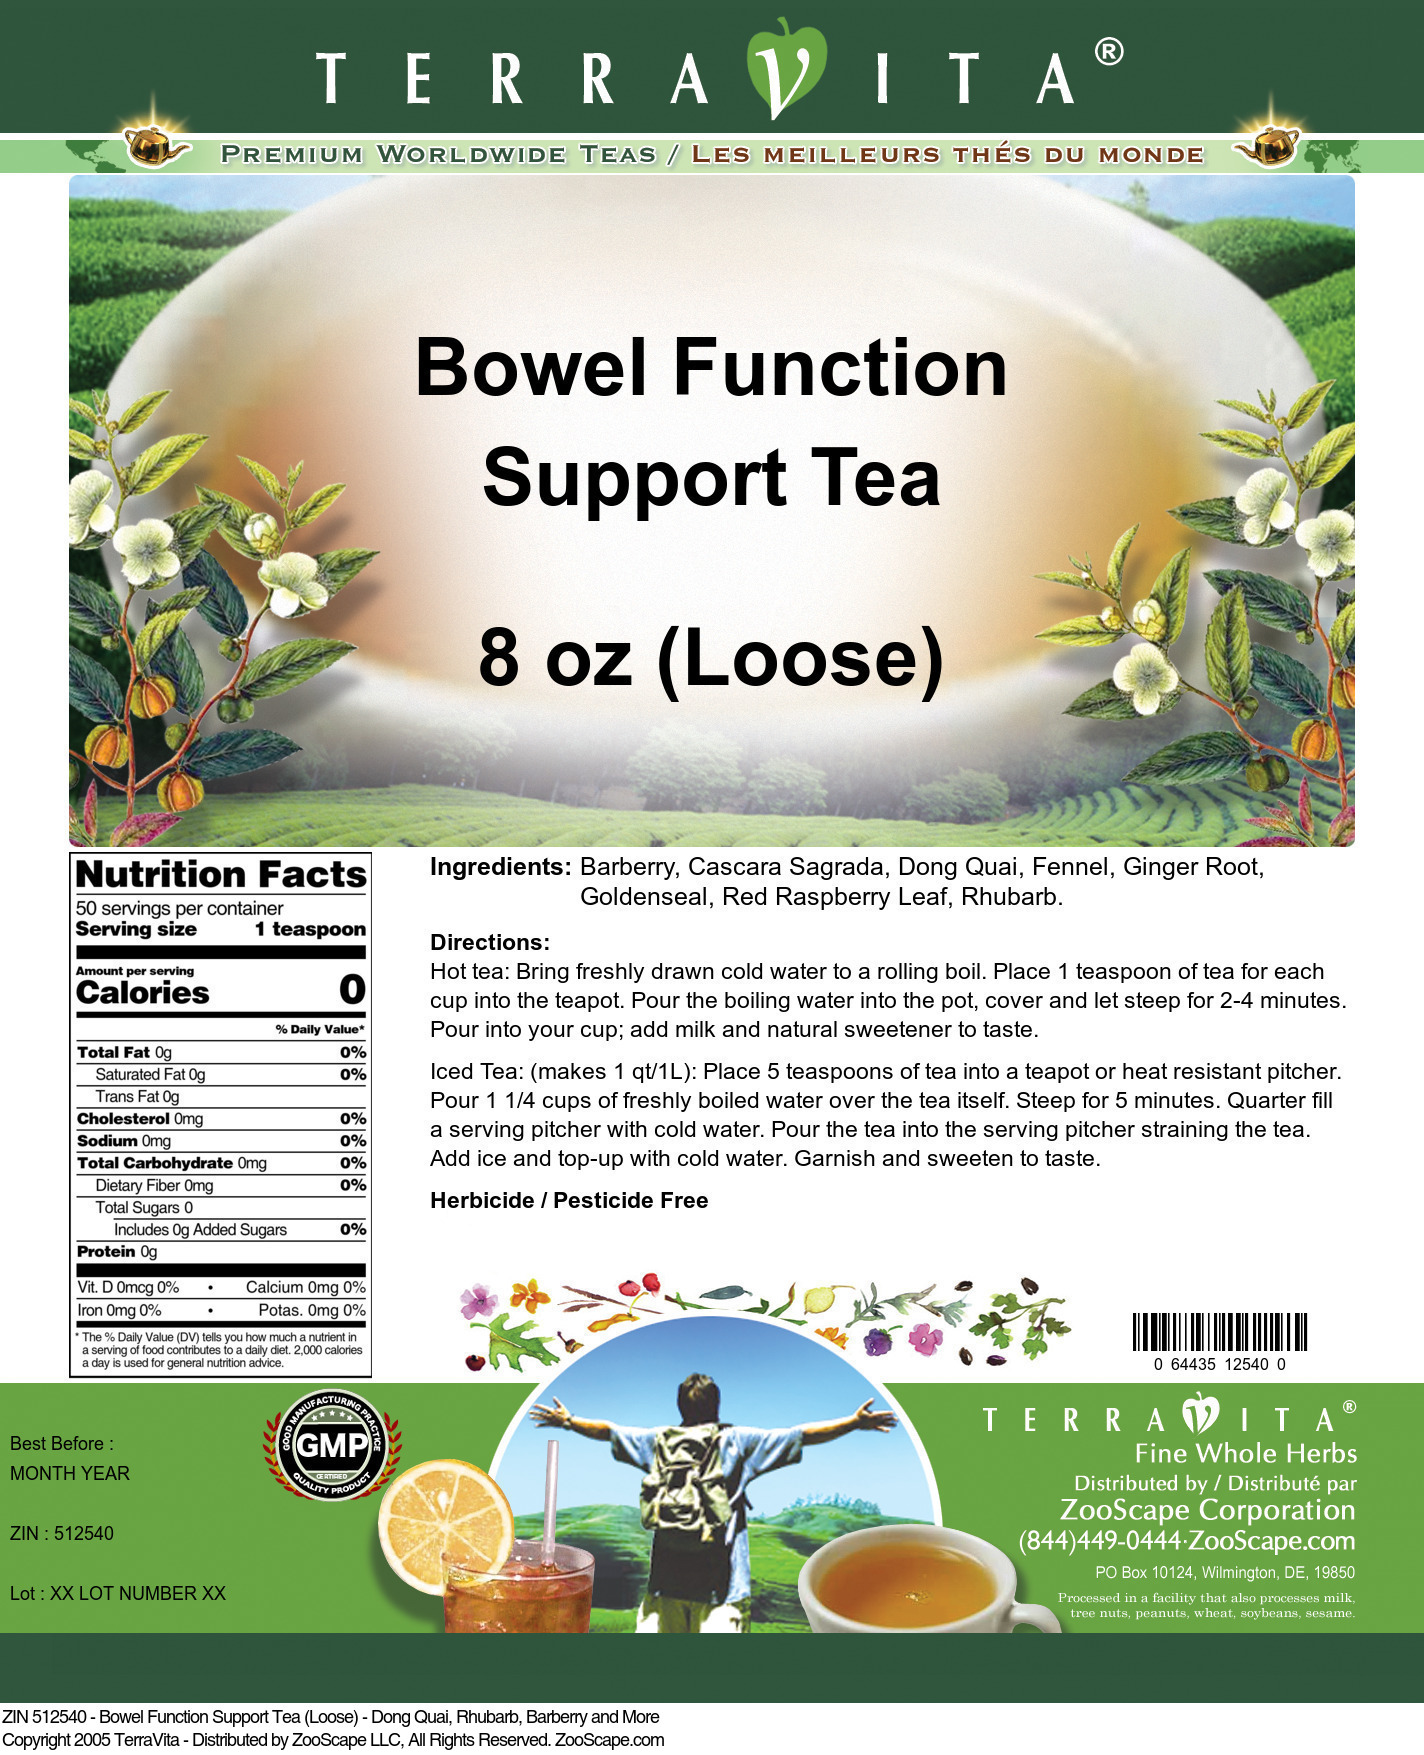 Bowel Function Support Tea (Loose) - Dong Quai, Rhubarb, Barberry and More